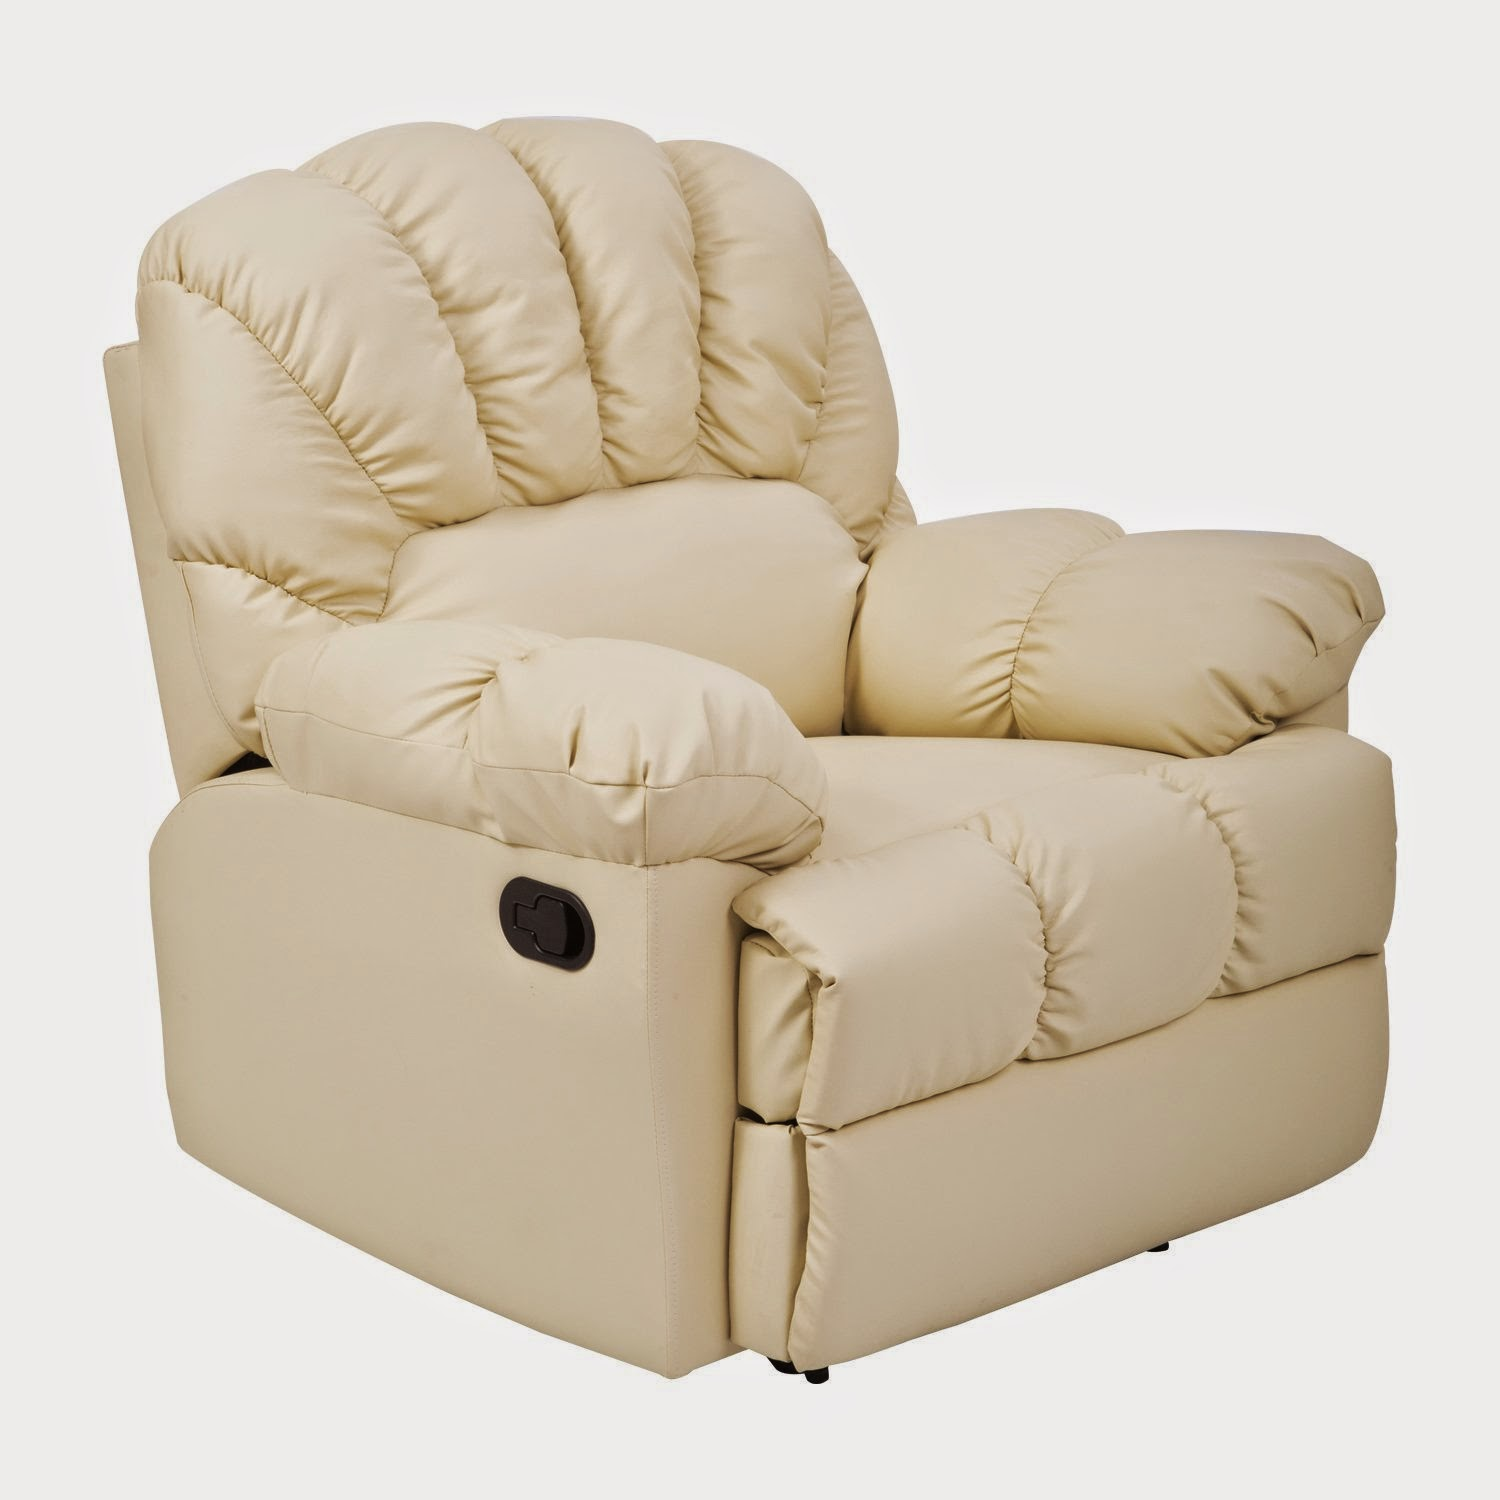 Cheap Reclining Sofas Sale Cream Leather Recliner Corner Sofa